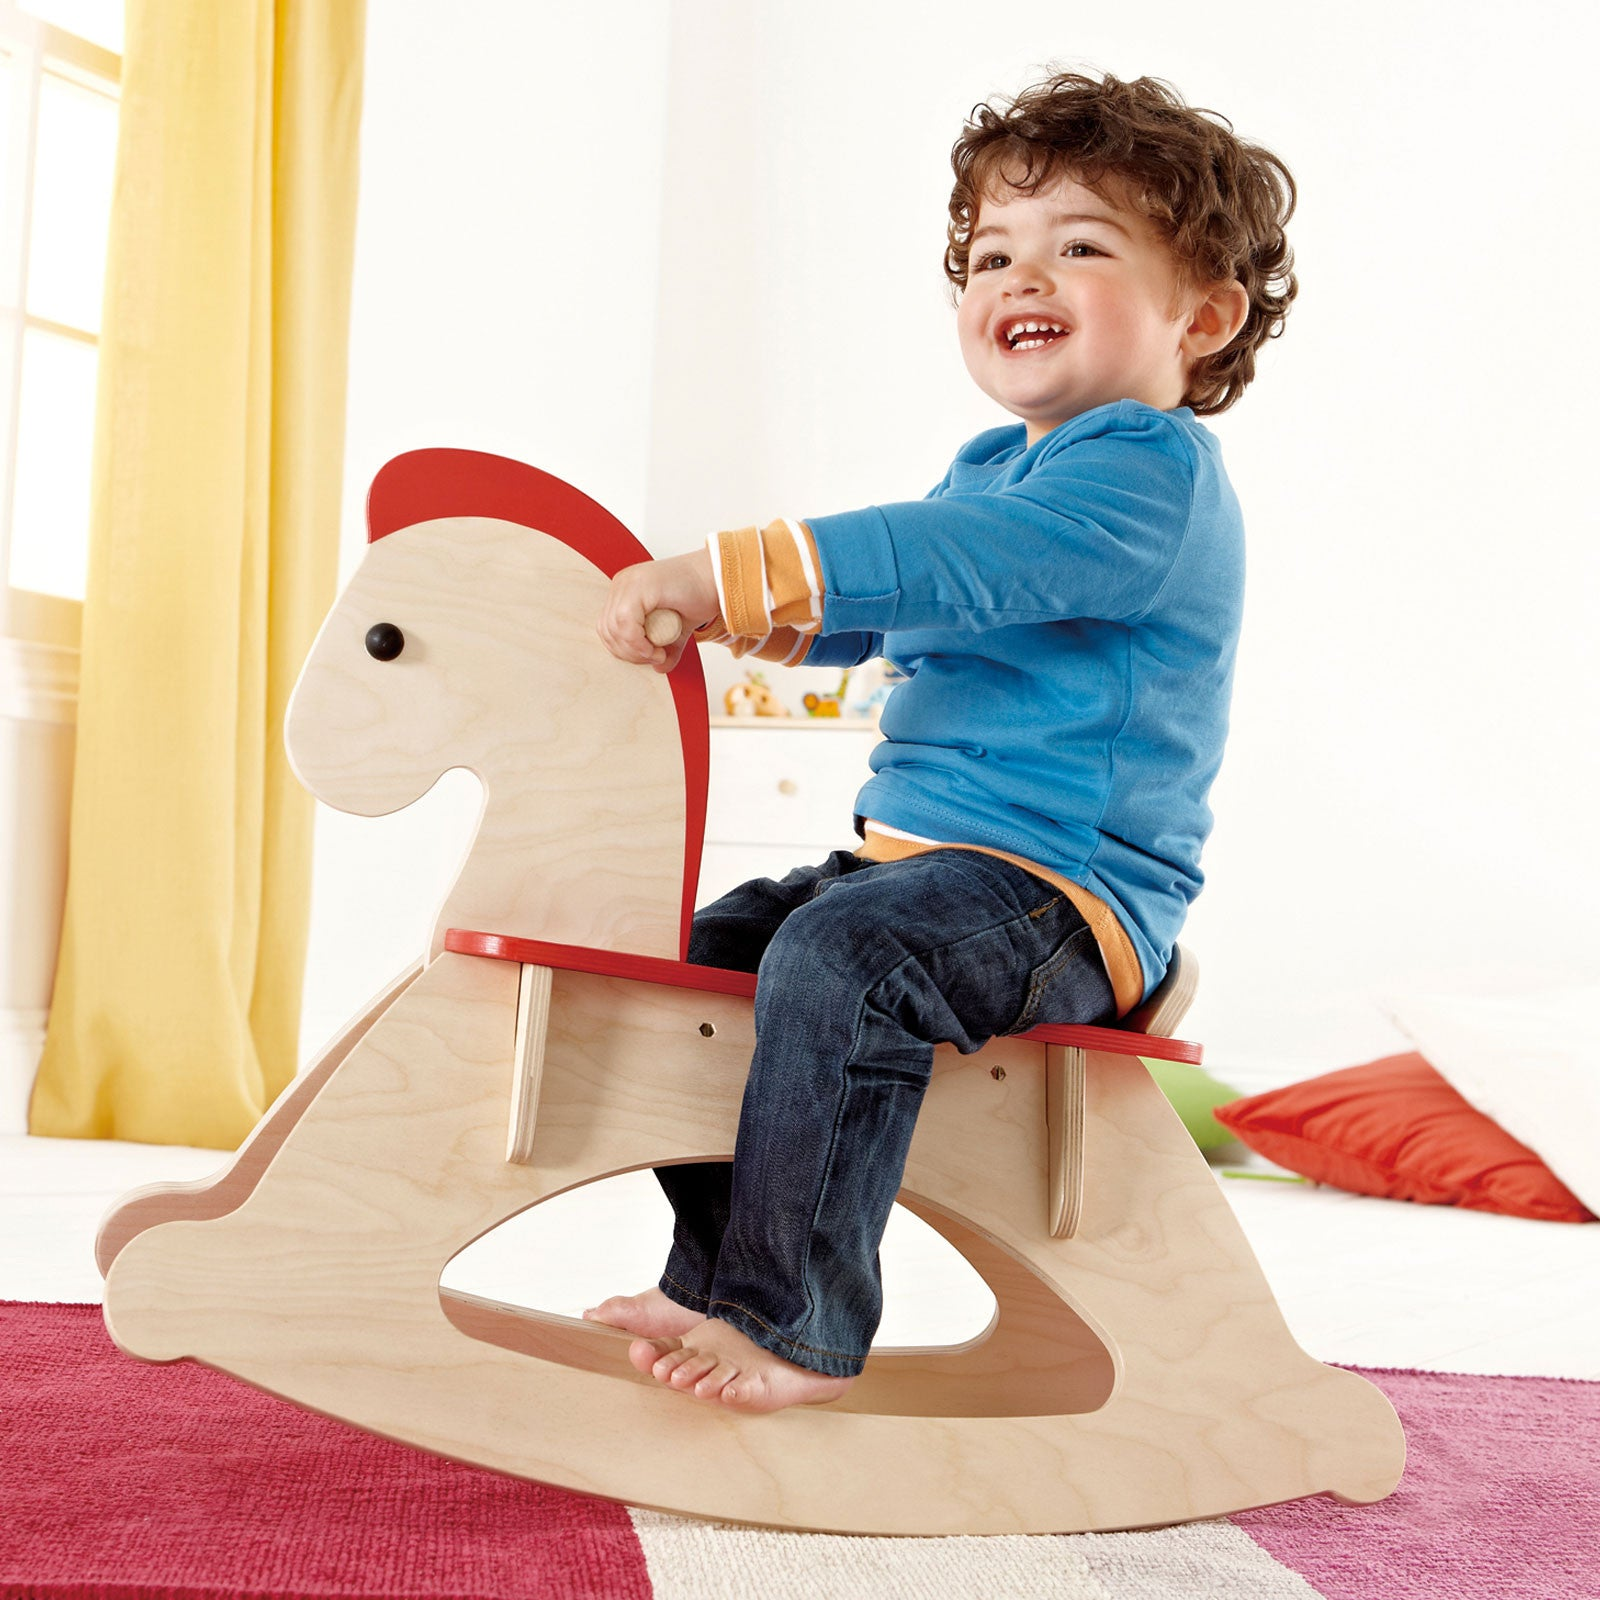 Hape Grow With Me Wooden Rocking Horse Hape Kids Riding Vehicles at Little Earth Nest Eco Shop